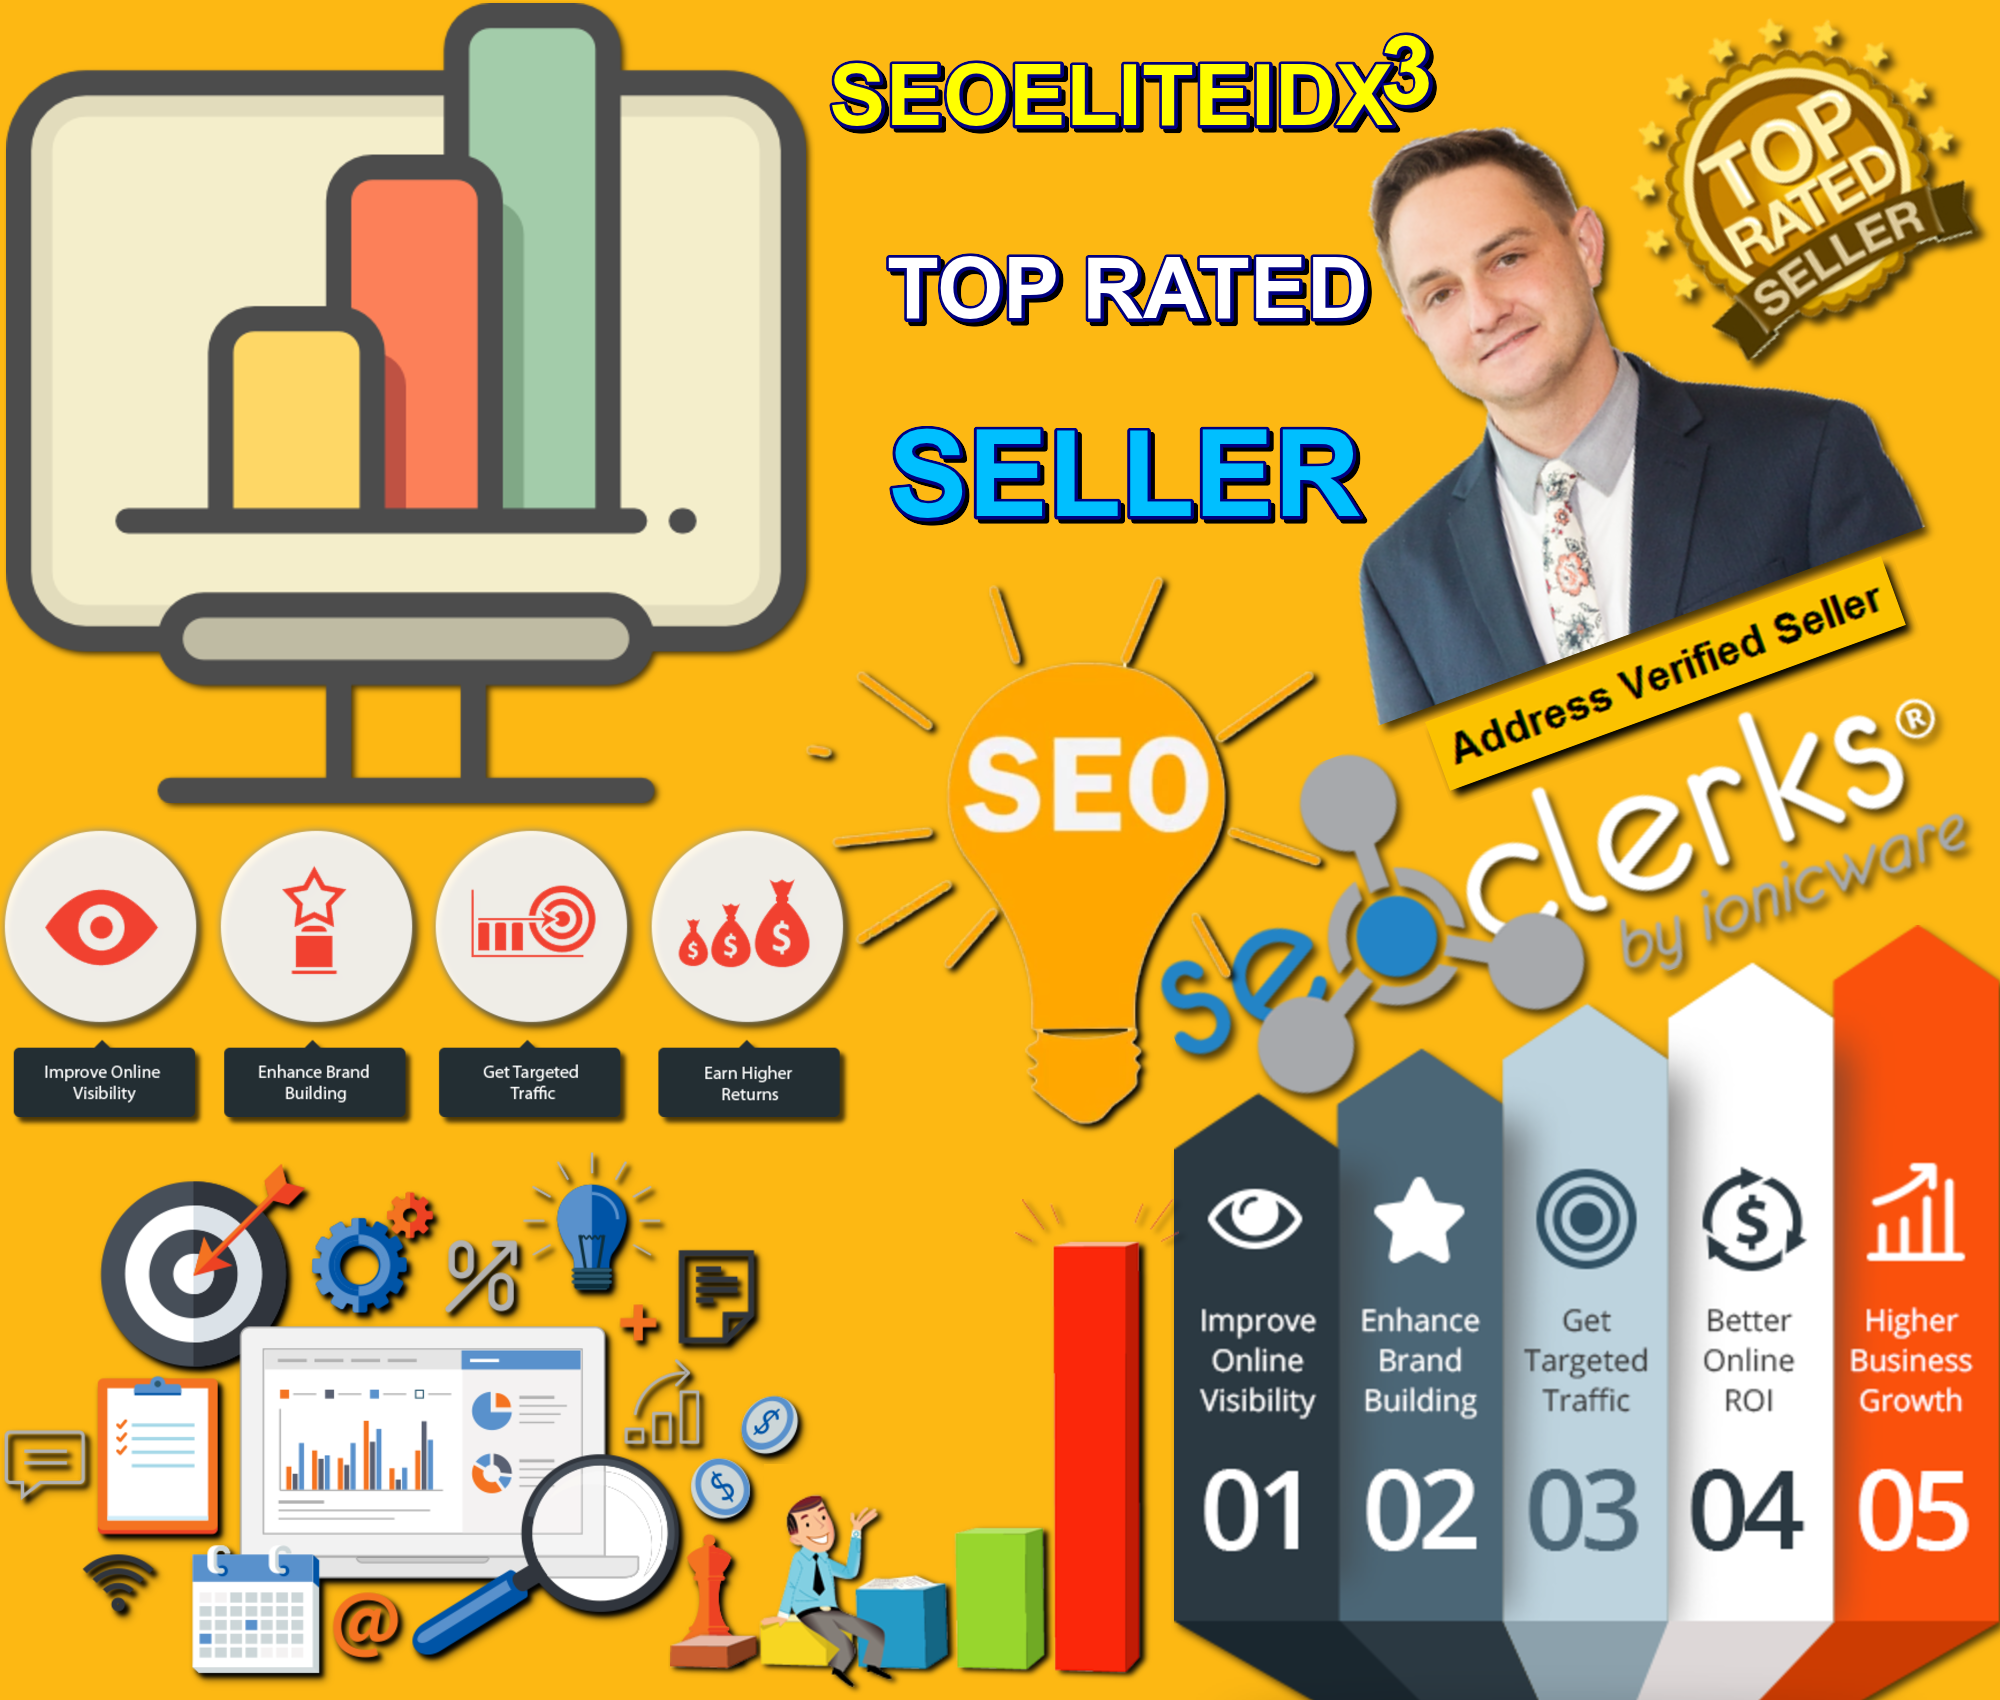 2 Million Worldwide USA Social Signal Traffic High Quality SEO Services Affiliate Marketing Business Promotion 100+ Million People Social Media Group AdSense Safe Boost Help To Rank 1st Page On Google